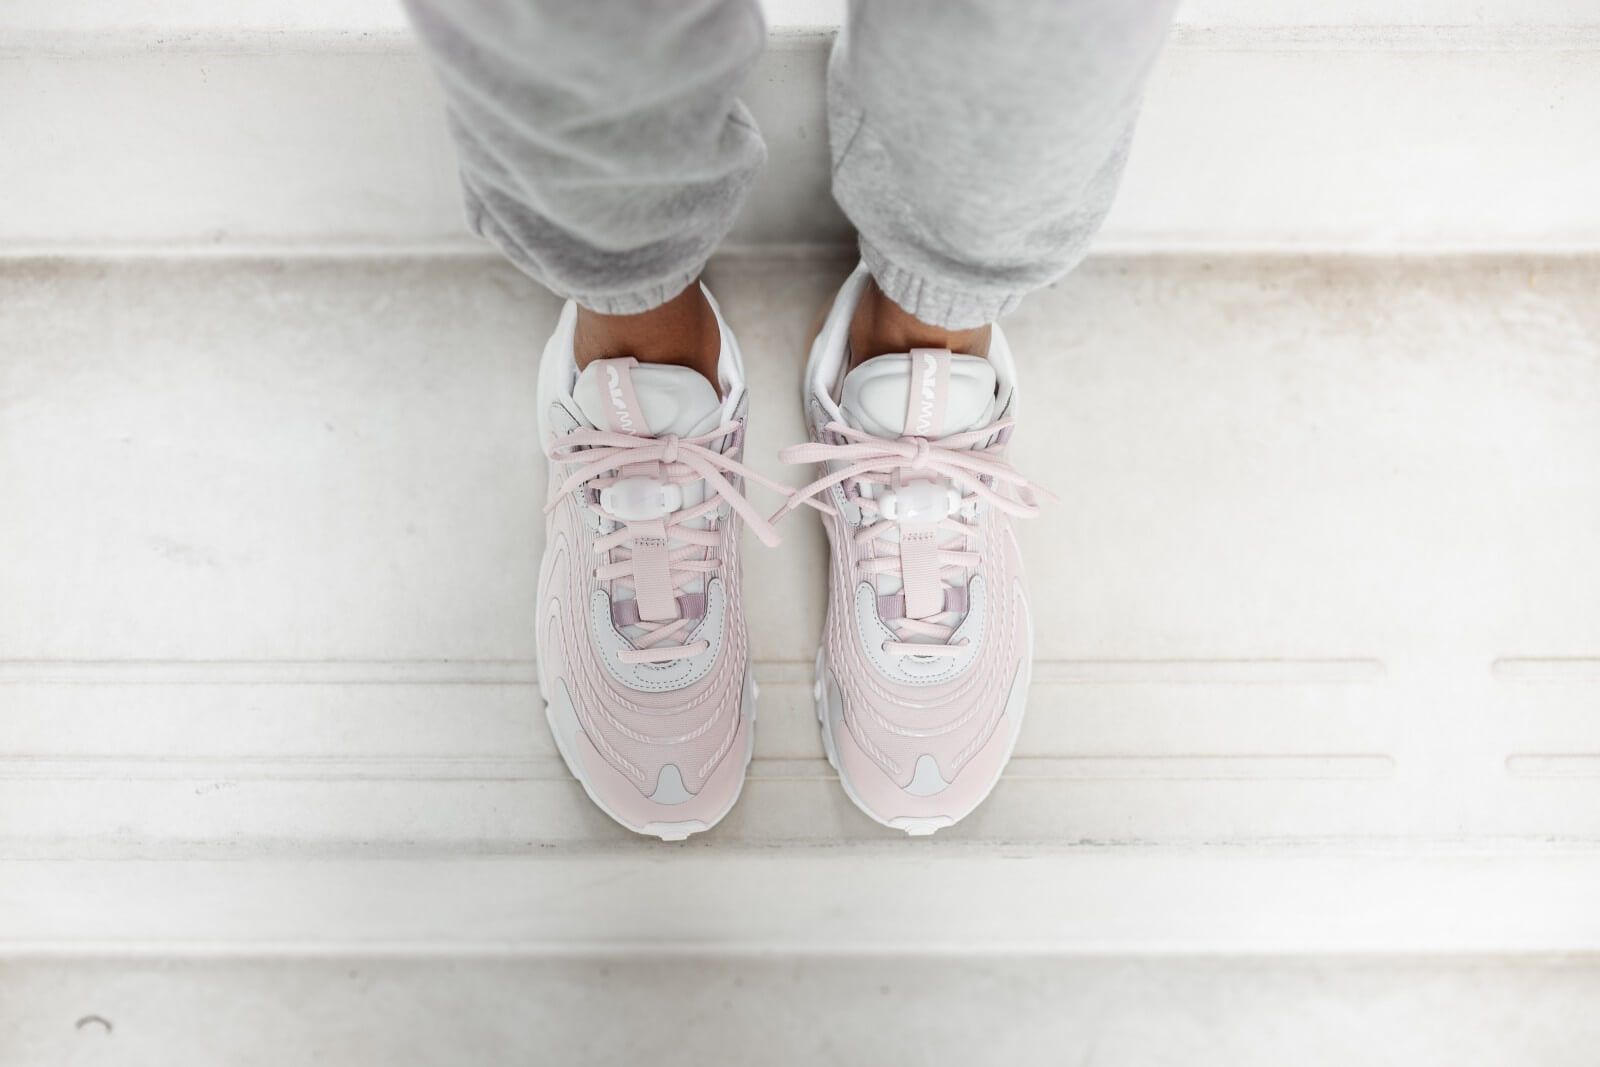 Nike Women's Air Max 270 React ENG Photon Dust/Summit White-Barely Rose